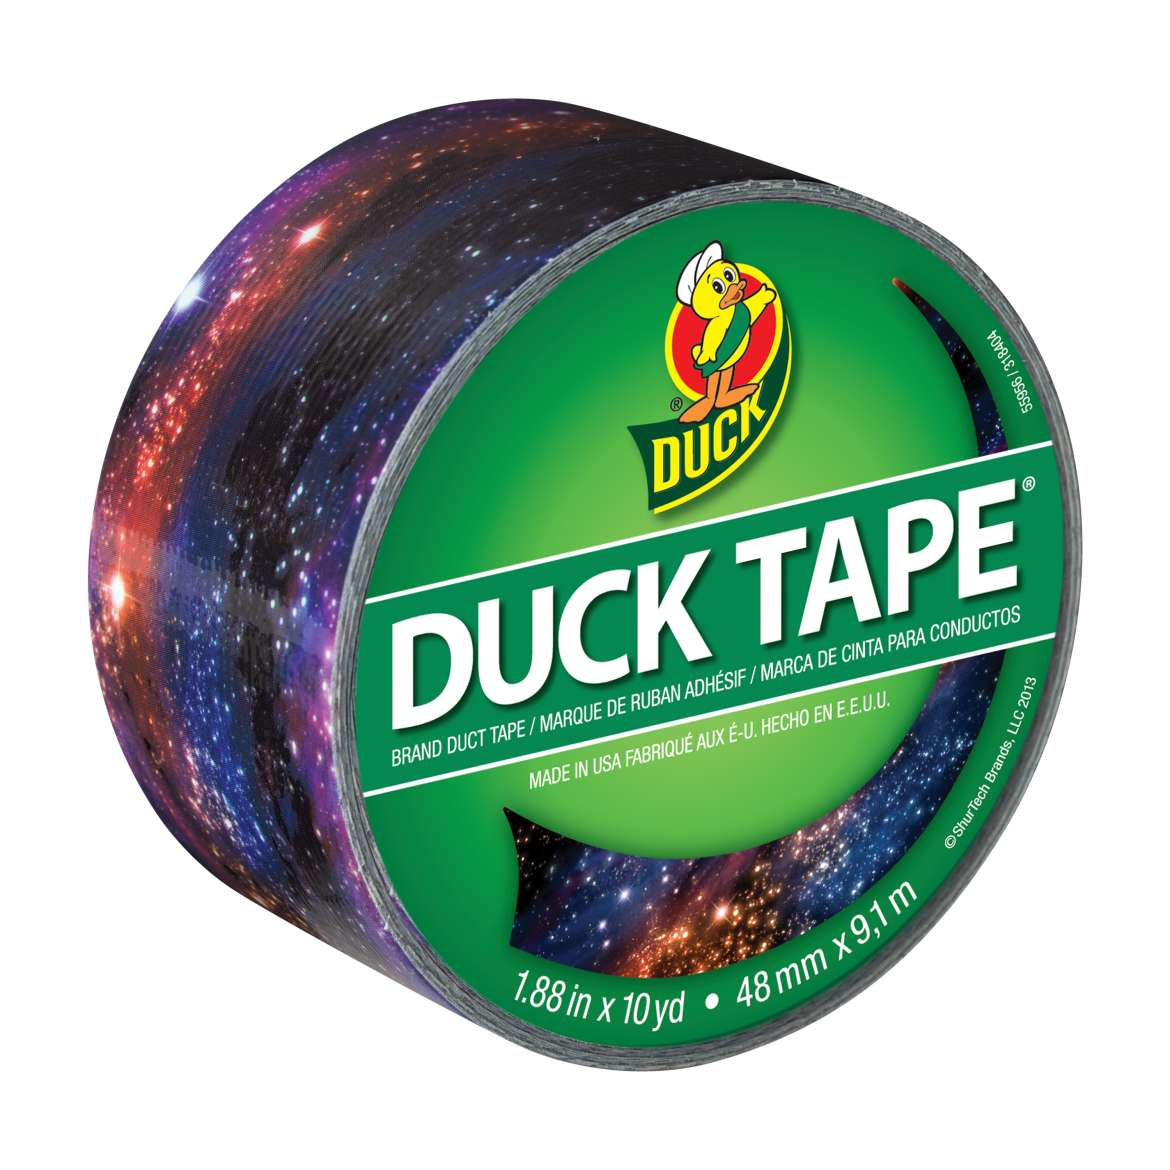 "Duck Brand Duct Tape, 1.88"" x 10 yds, Galaxy"